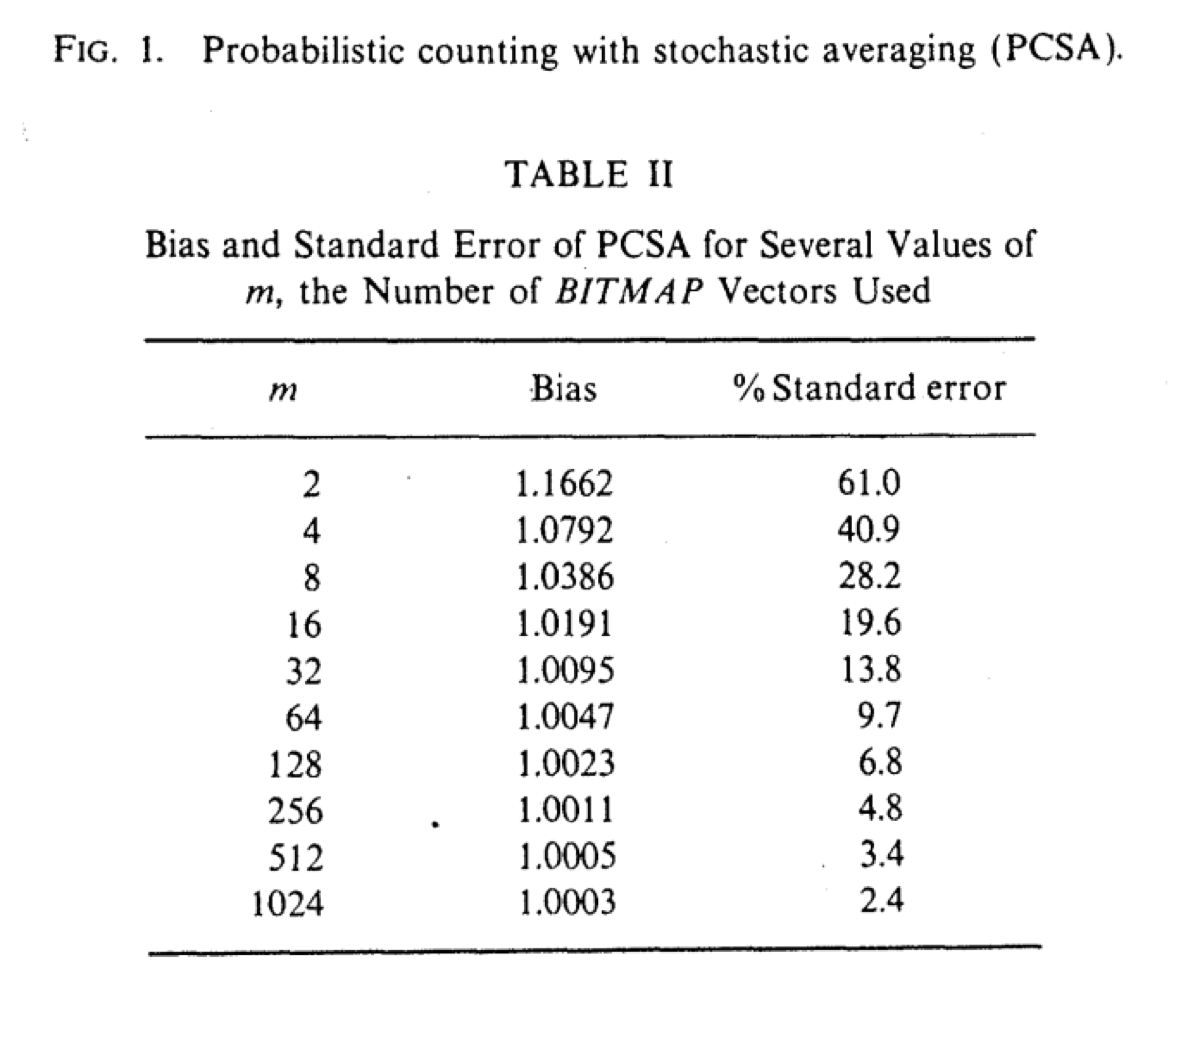 The table of bias value calculated by Philippe Flajolet